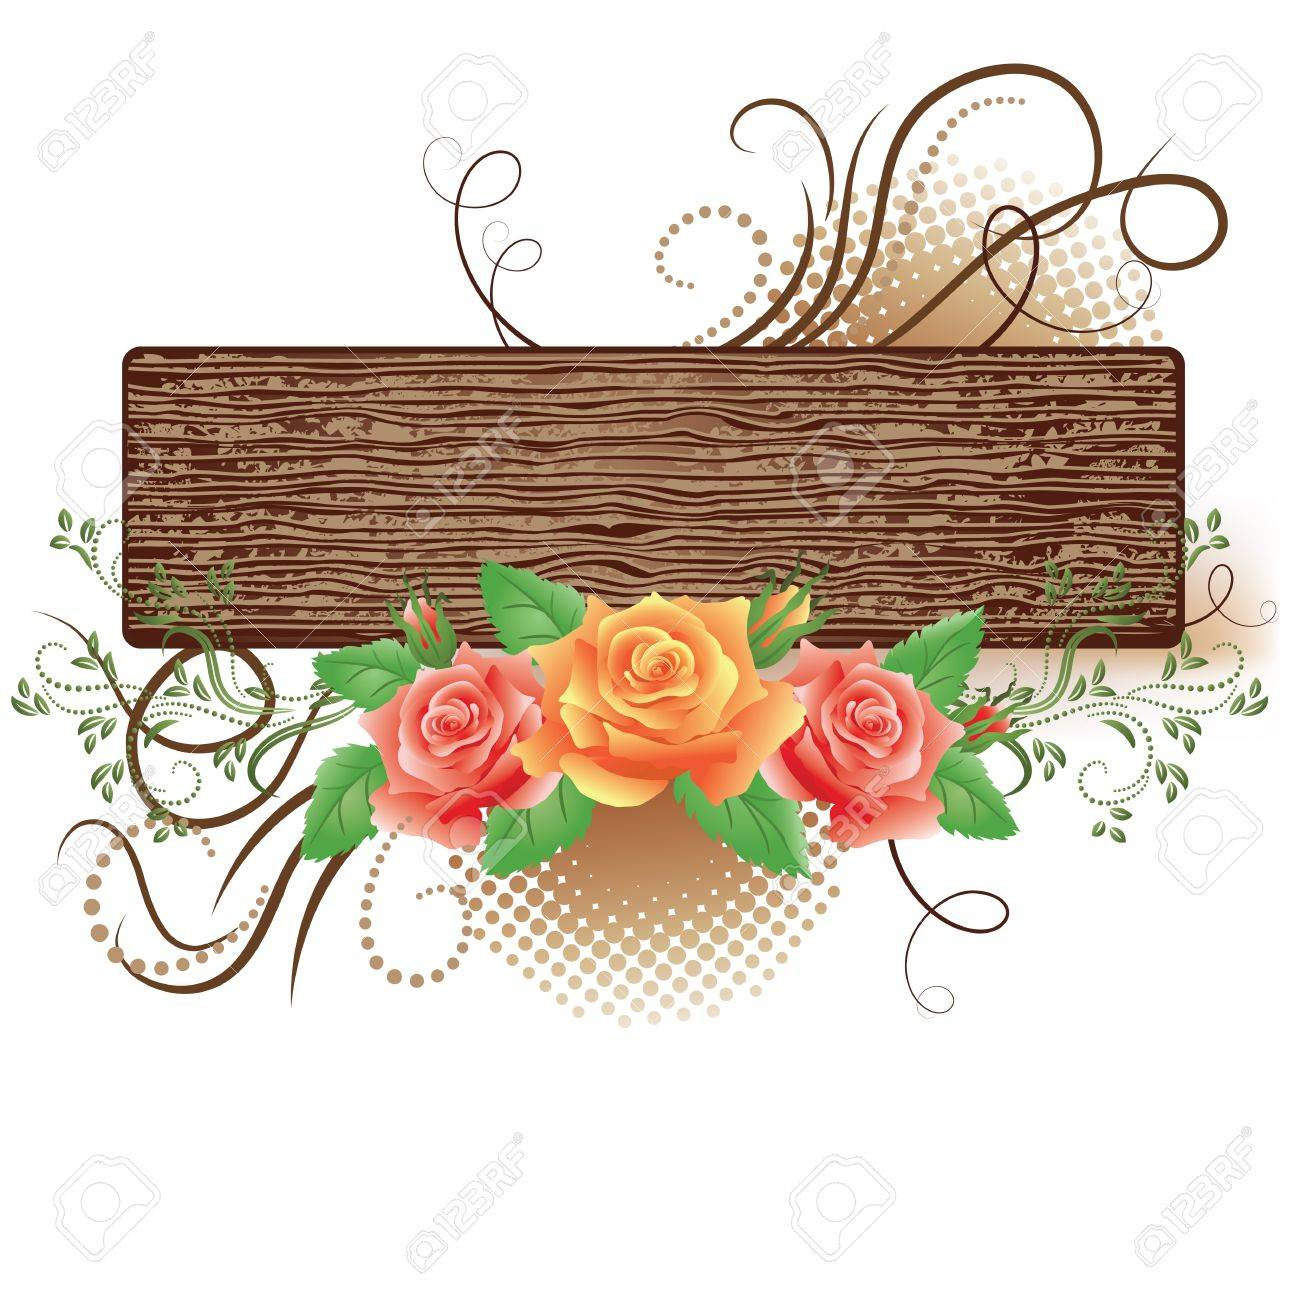 Abstract wooden signboard with decorative roses Stock Vector - 15386883